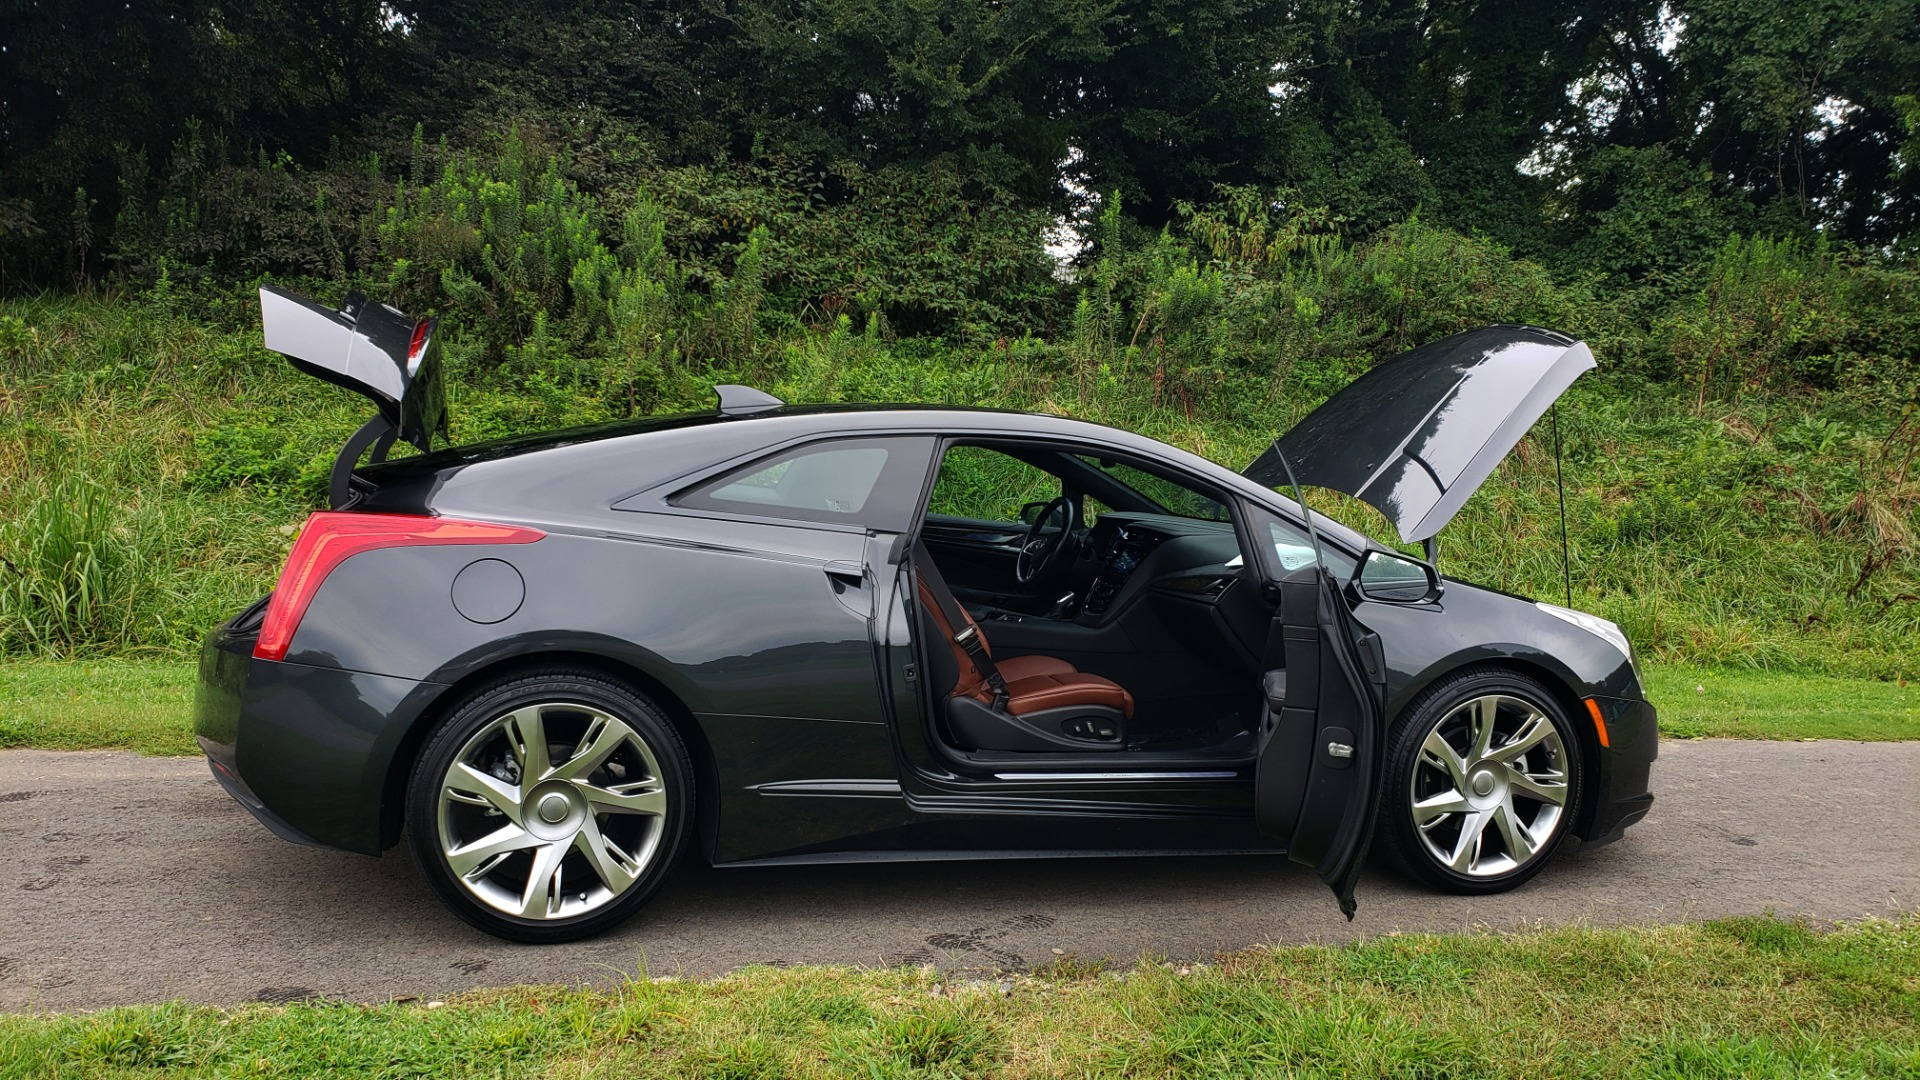 Used 2014 Cadillac ELR 2DR COUPE / HYBRID / NAV / BOSE / HEATED SEATS / REARVIEW for sale $34,000 at Formula Imports in Charlotte NC 28227 18